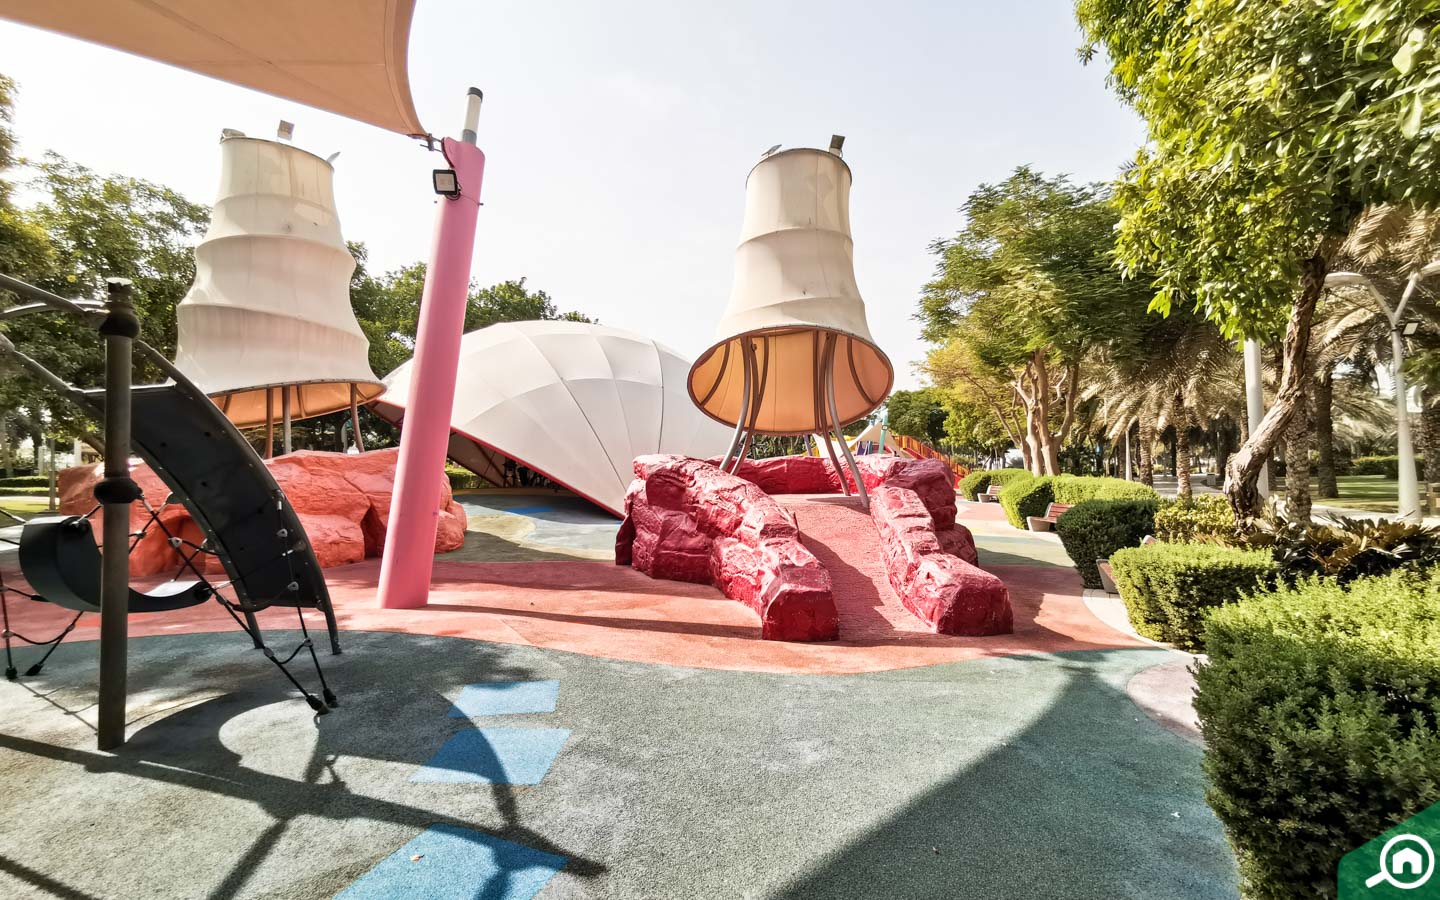 Children's play area at Zabeel Park Dubai